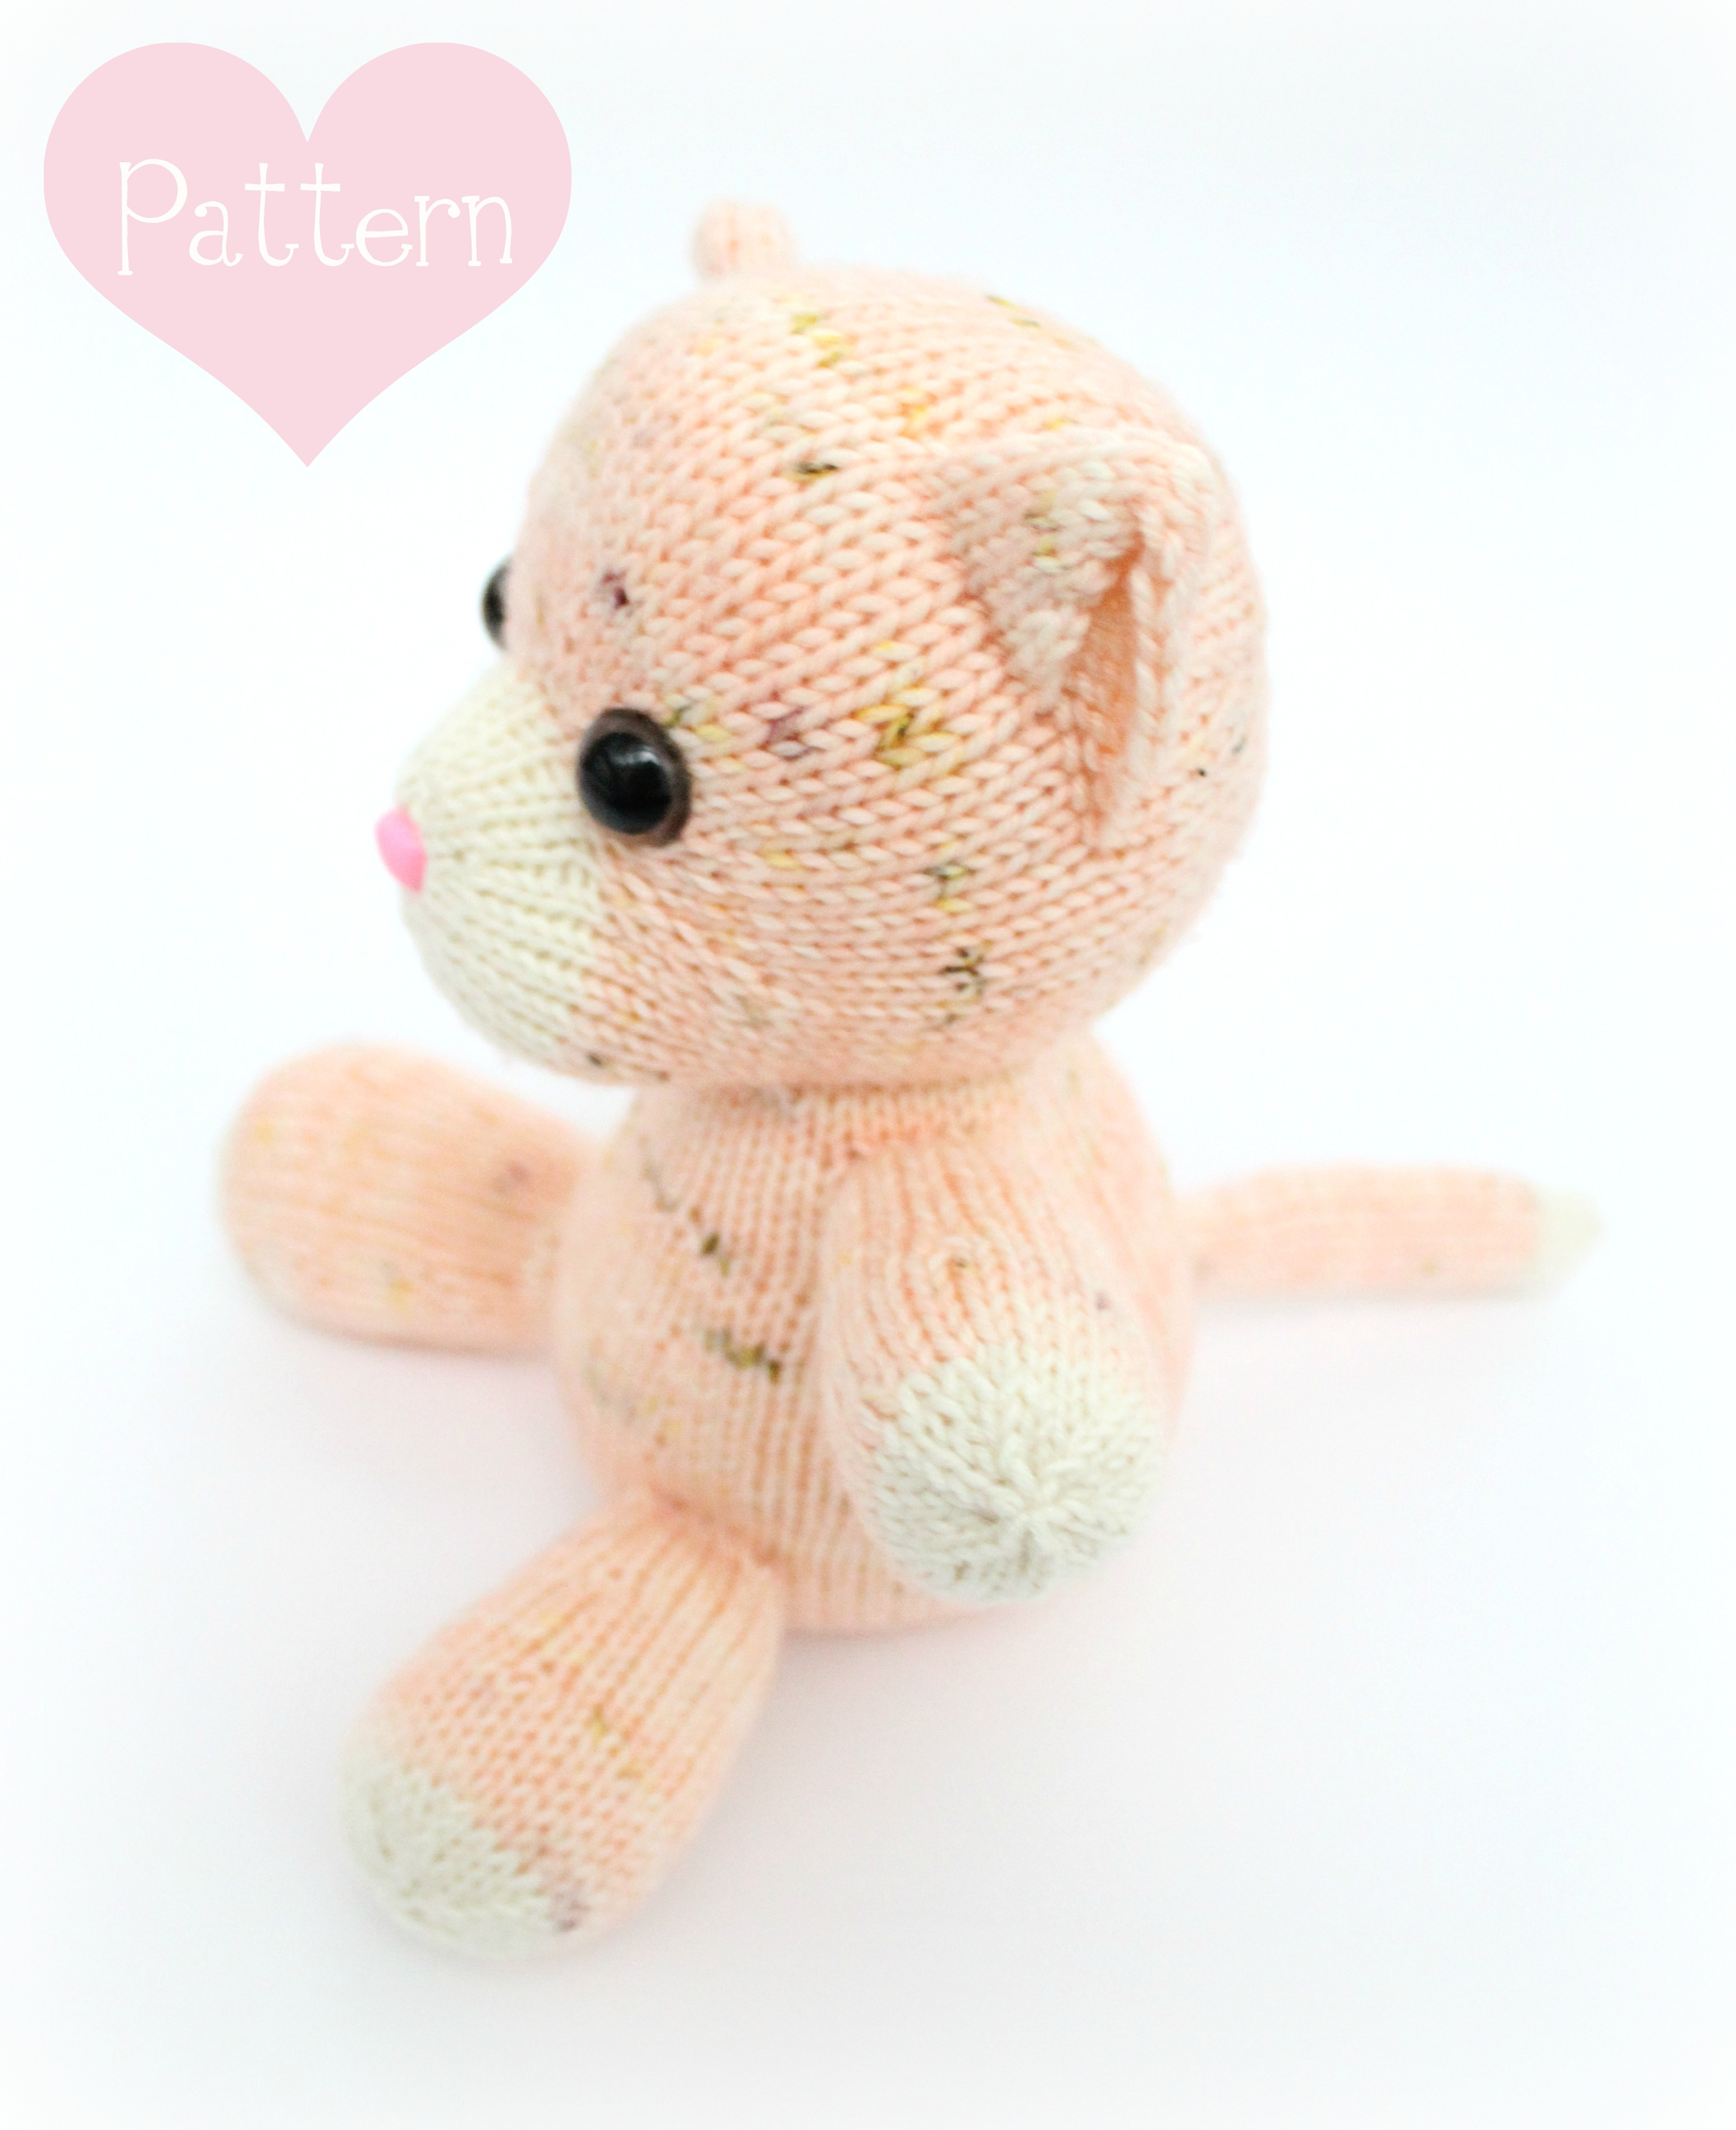 Knitting Patterns For Toys Uk Free Knitting Patterns For Toy Cats